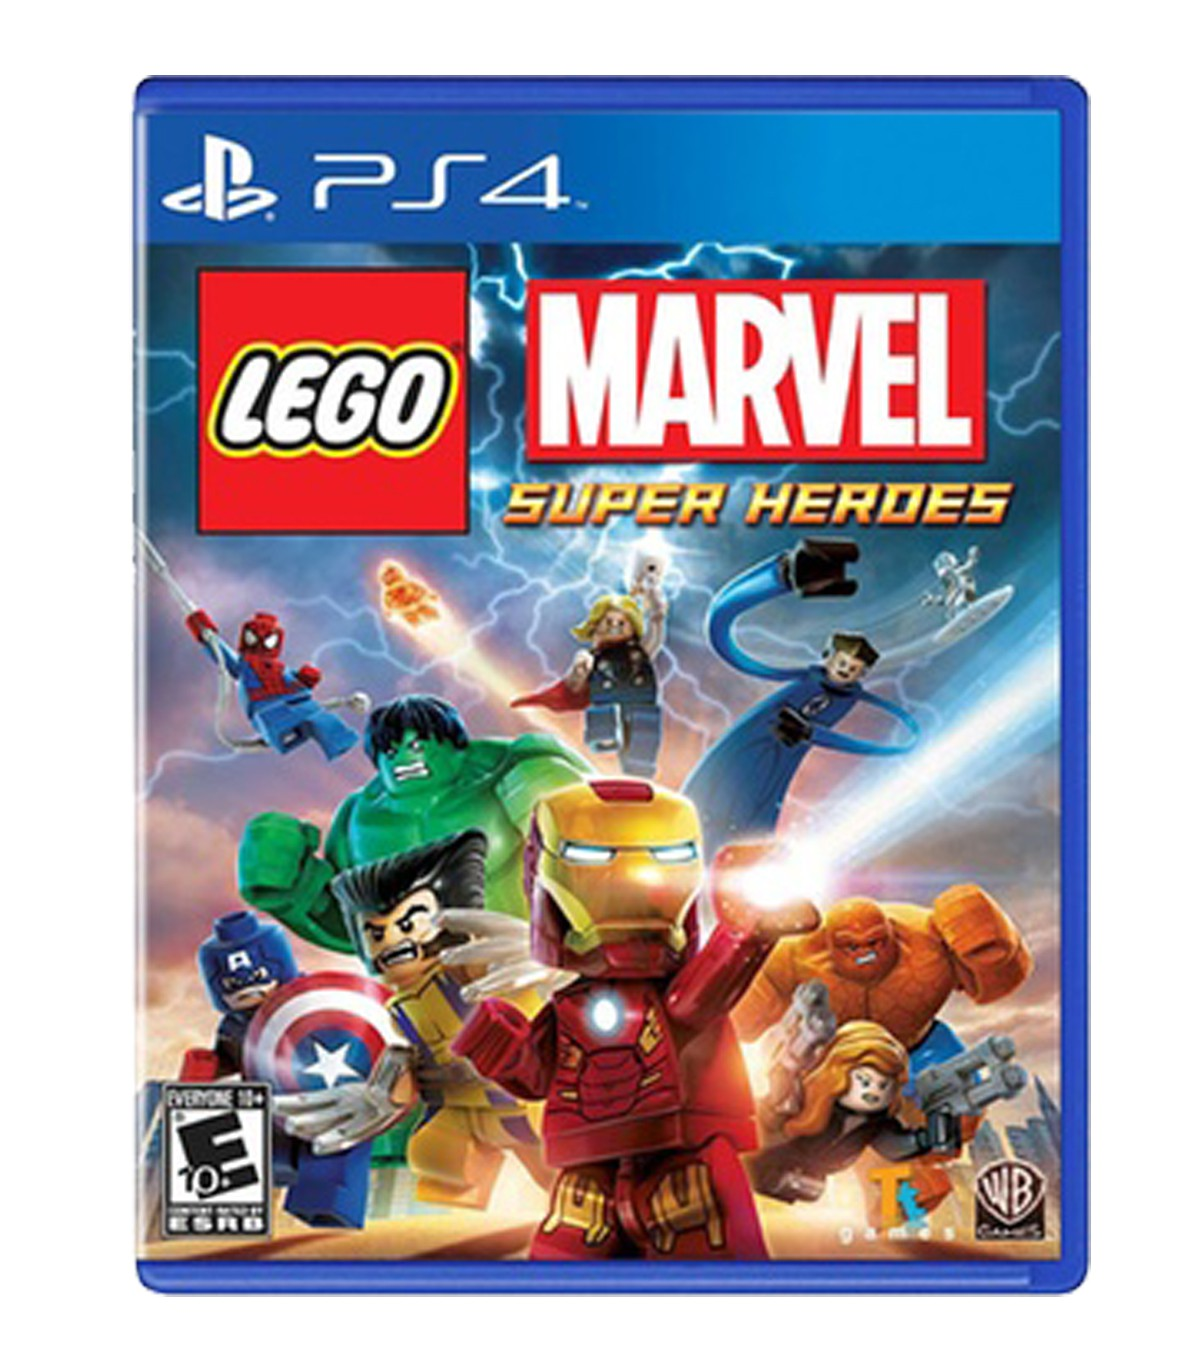 بازی Lego Marvel Super Heroes - پلی استیشن 4